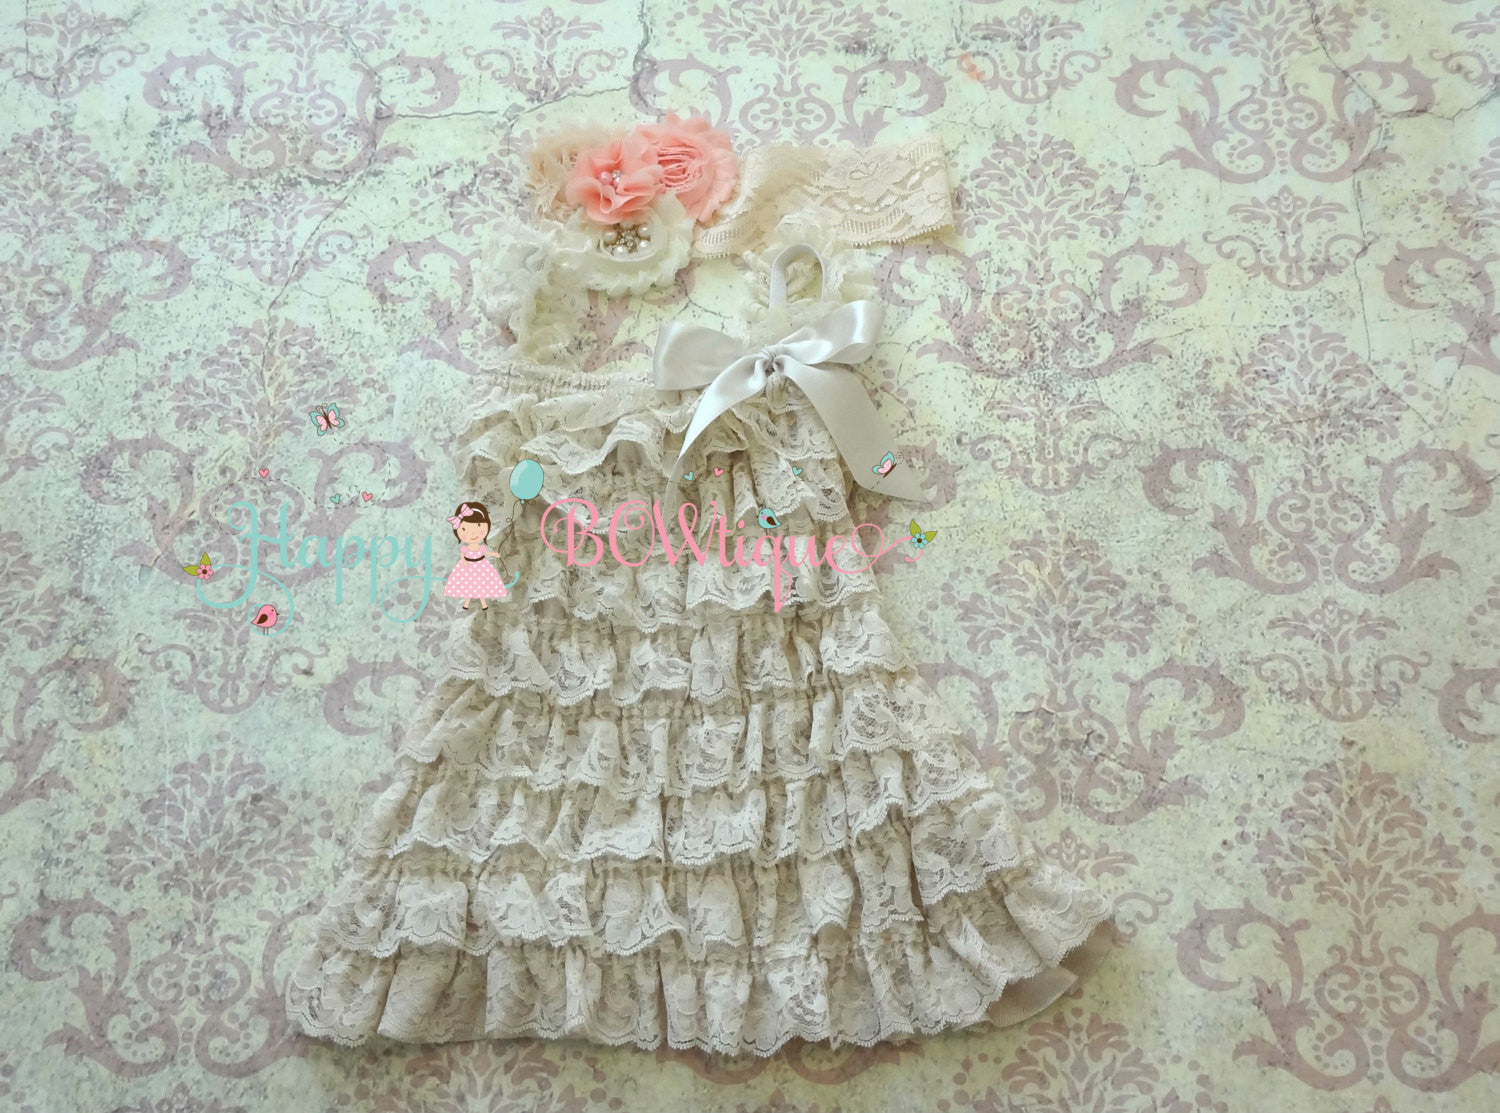 Champagne Blush Peach Lace Dress set - Happy BOWtique - children's clothing, Baby Girl clothing